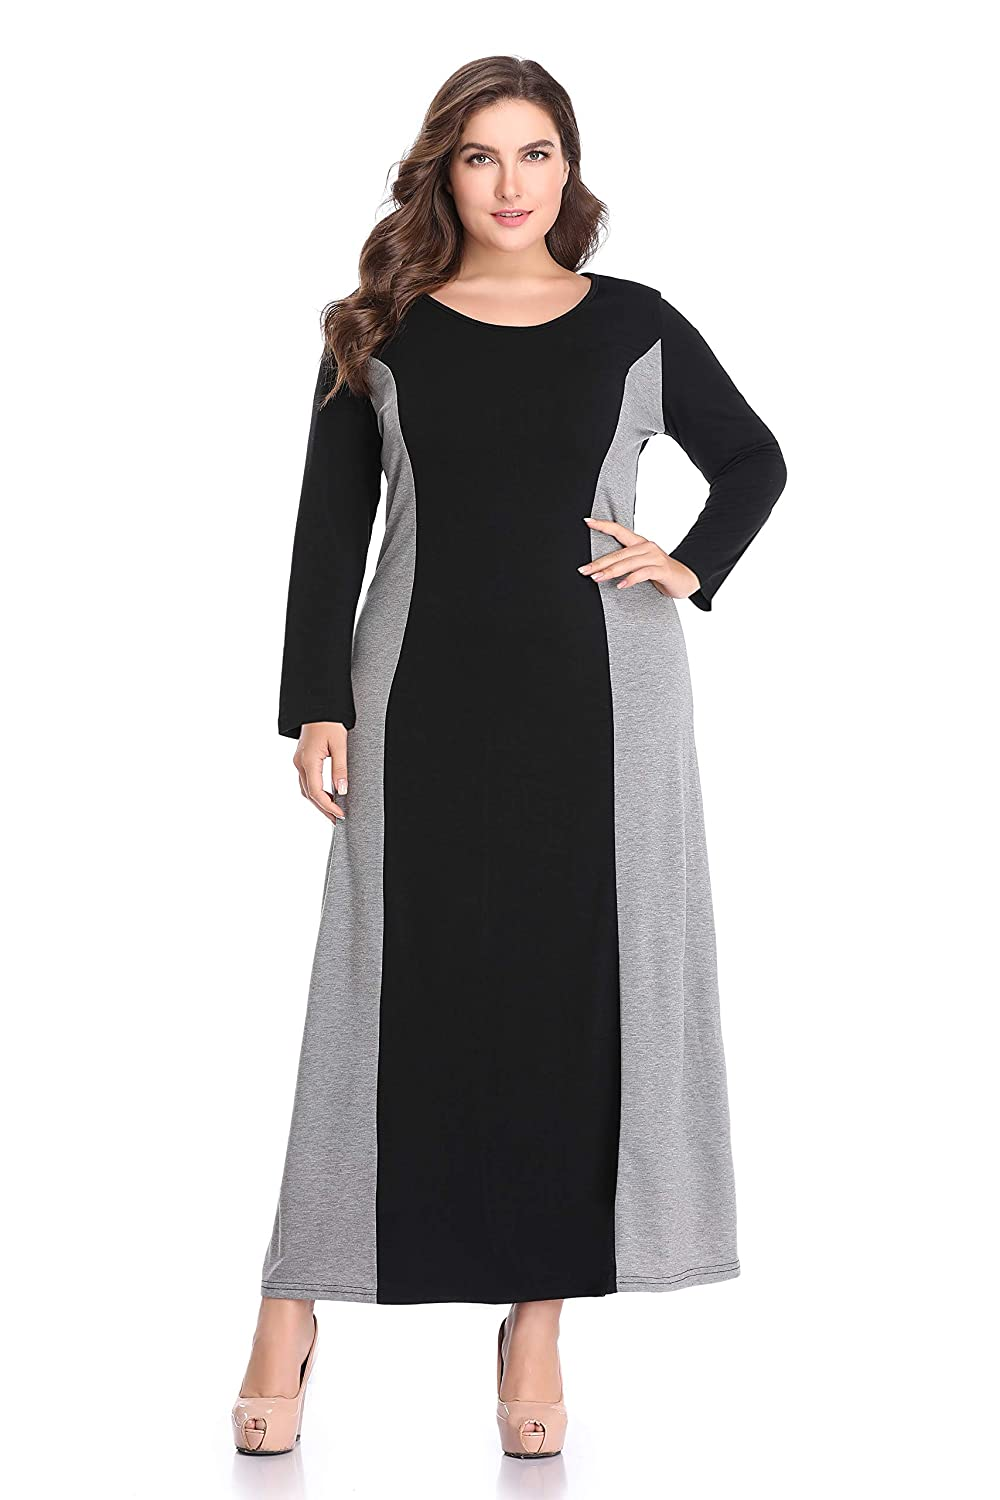 AUDATE Women's Plus Size Long Sleeve Color Block Round Neck Maxi Dress with Pocket